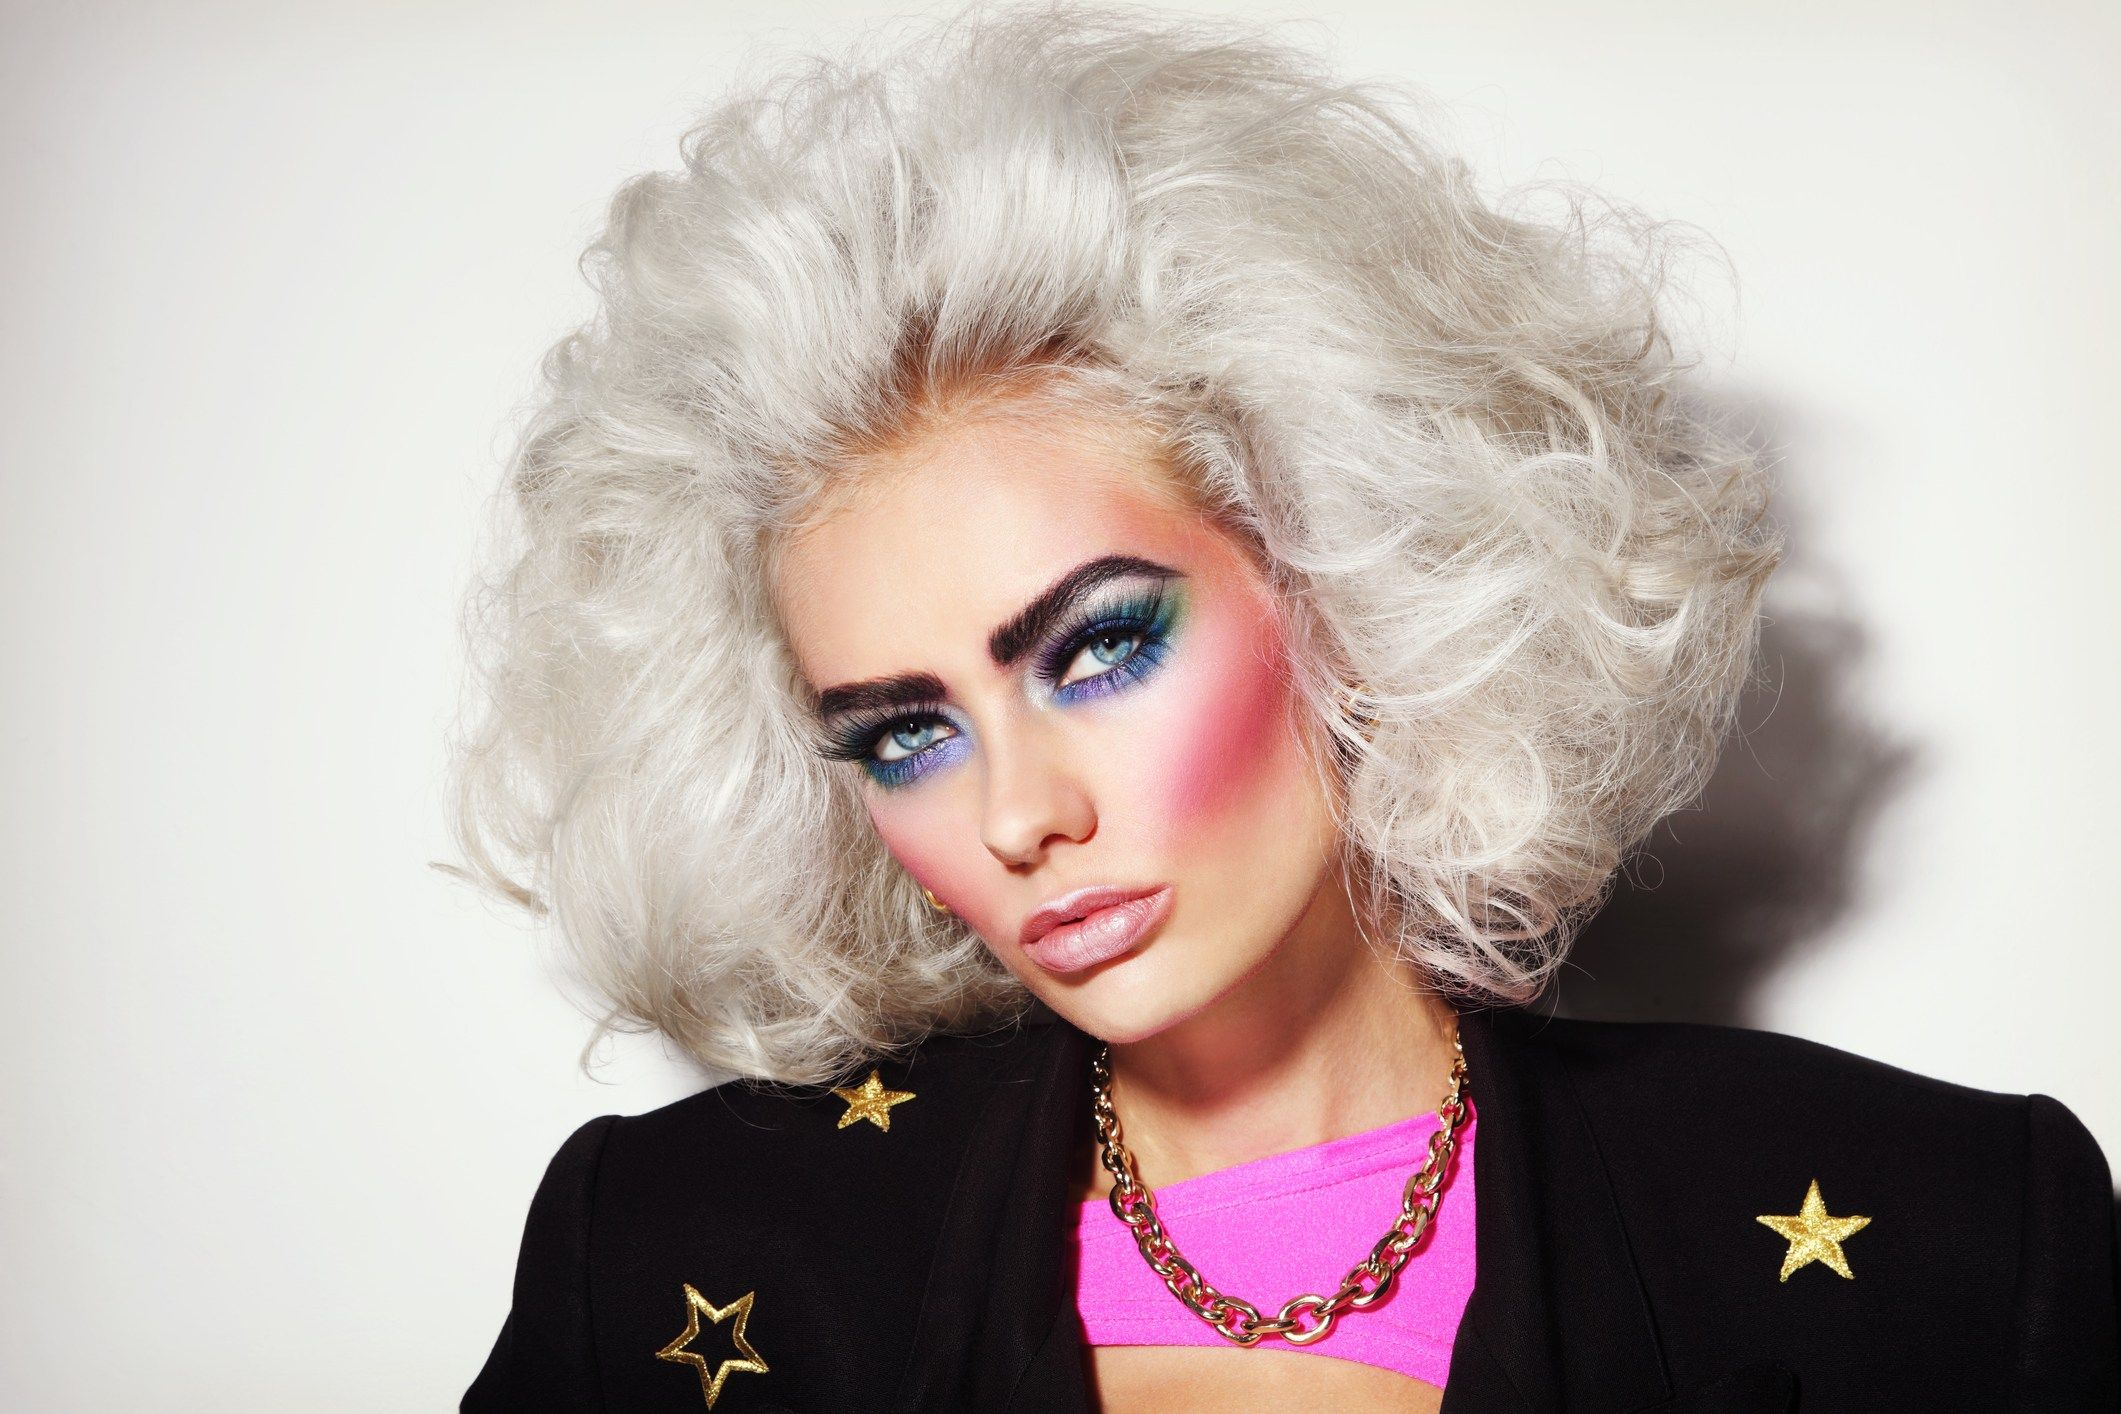 The Cringe Worthy Beauty Trends From The 80s In 2020 80s Makeup